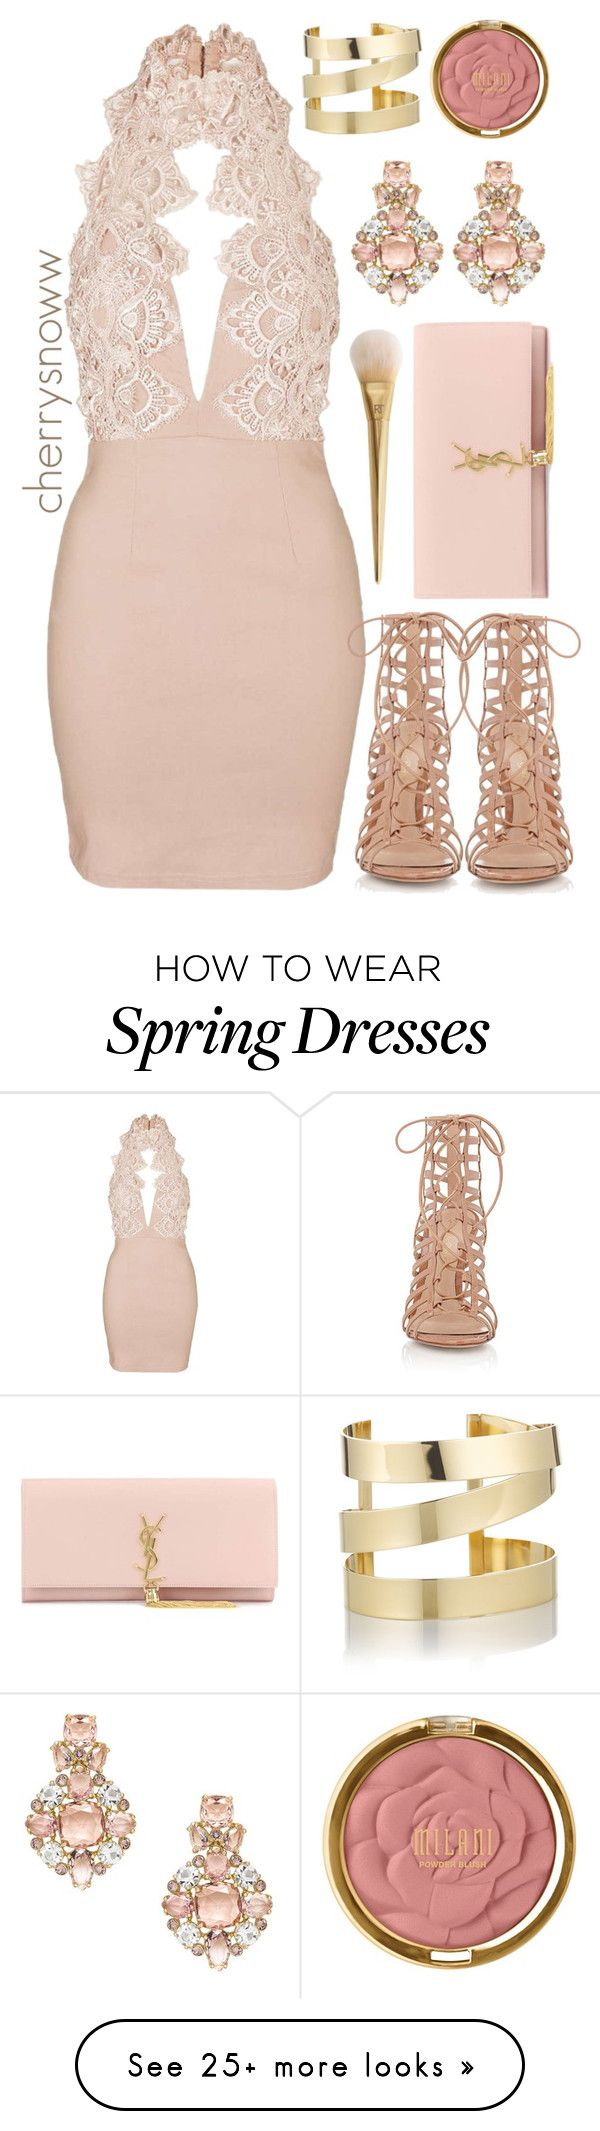 """""""Classy chic spring party outfit"""" by cherrysnoww on Polyvore featuring Topshop, Gianvito Rossi, Yves Saint Laurent, Milani, Kate Spade and Étoile Isabel Marant"""